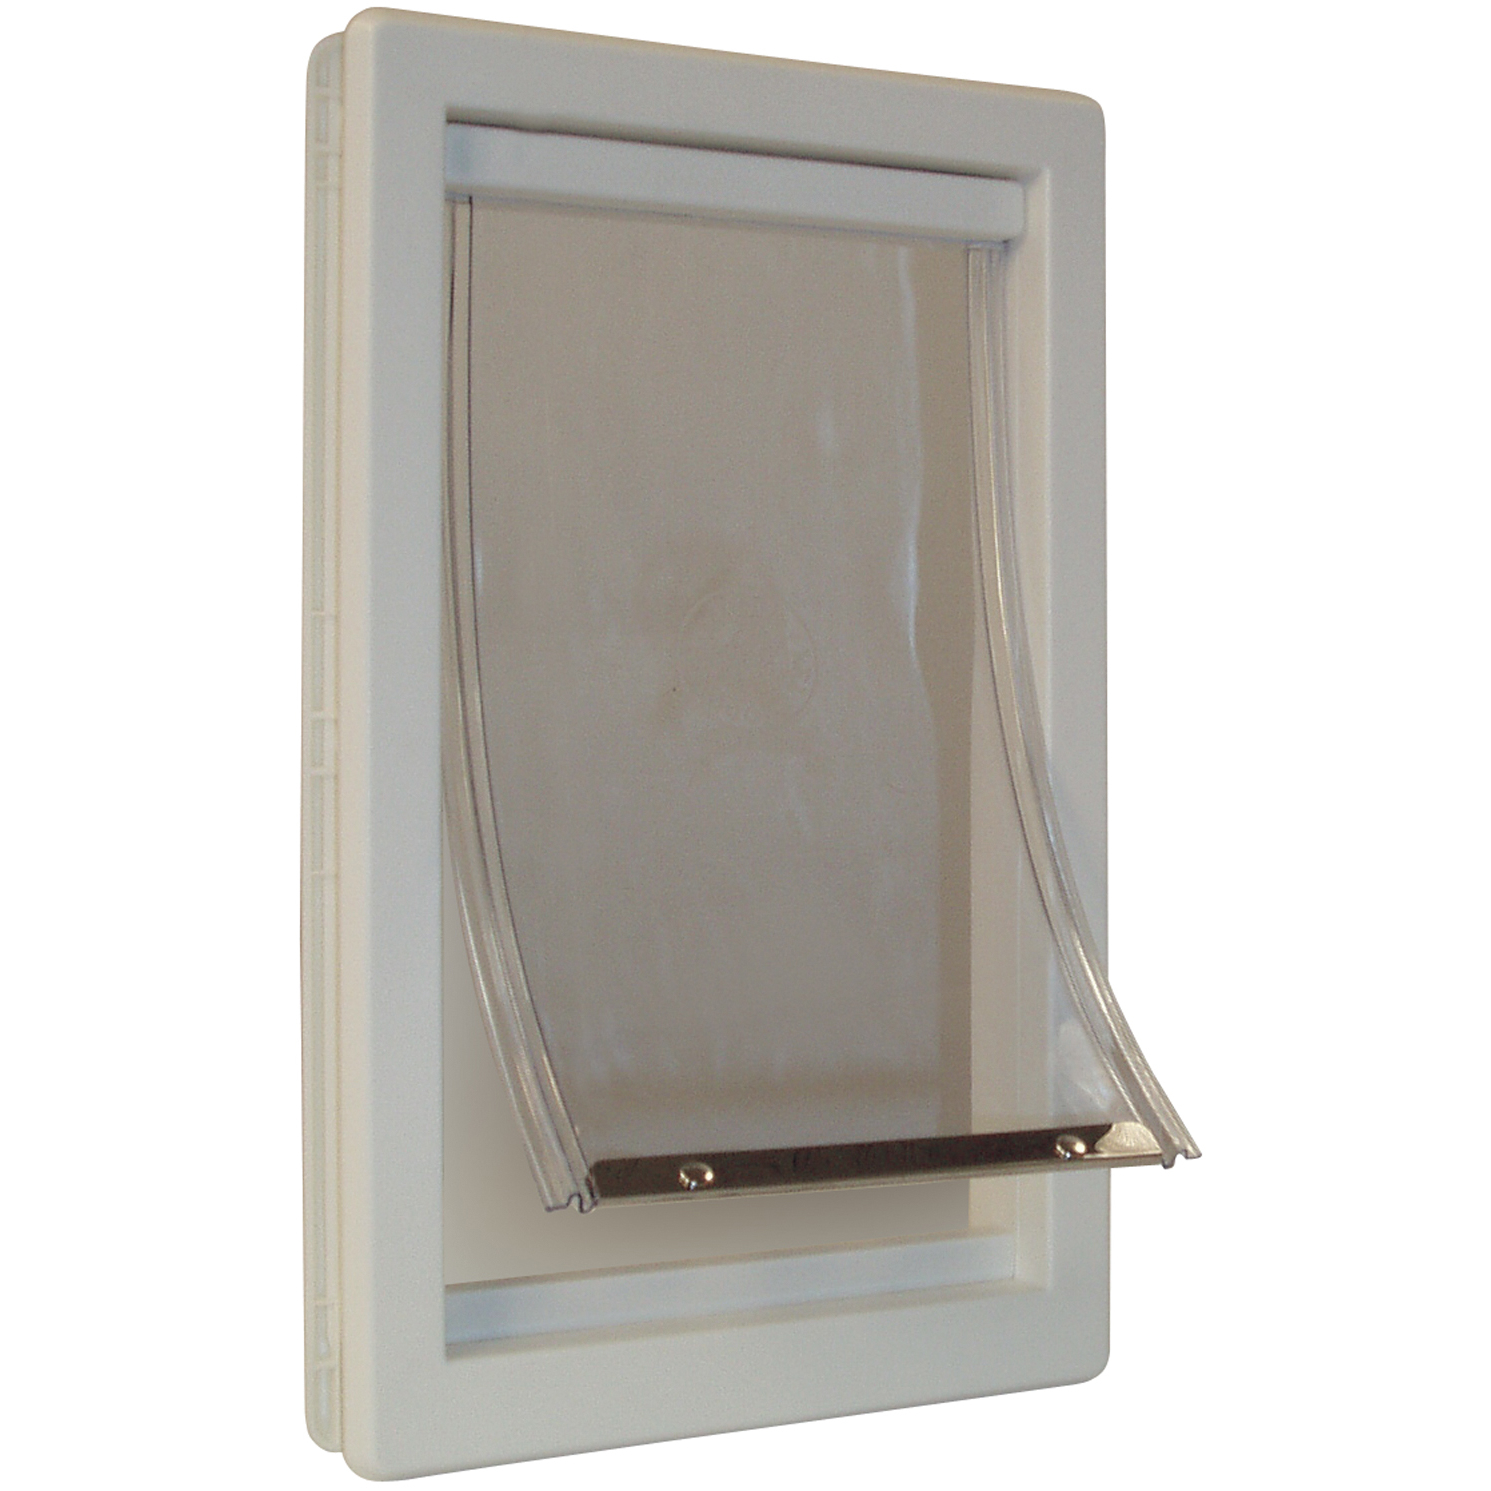 "Ideal Pet Products PPDXL 12-1/2"" X 18-9/16"" XL Thermoplastic Pet Door"